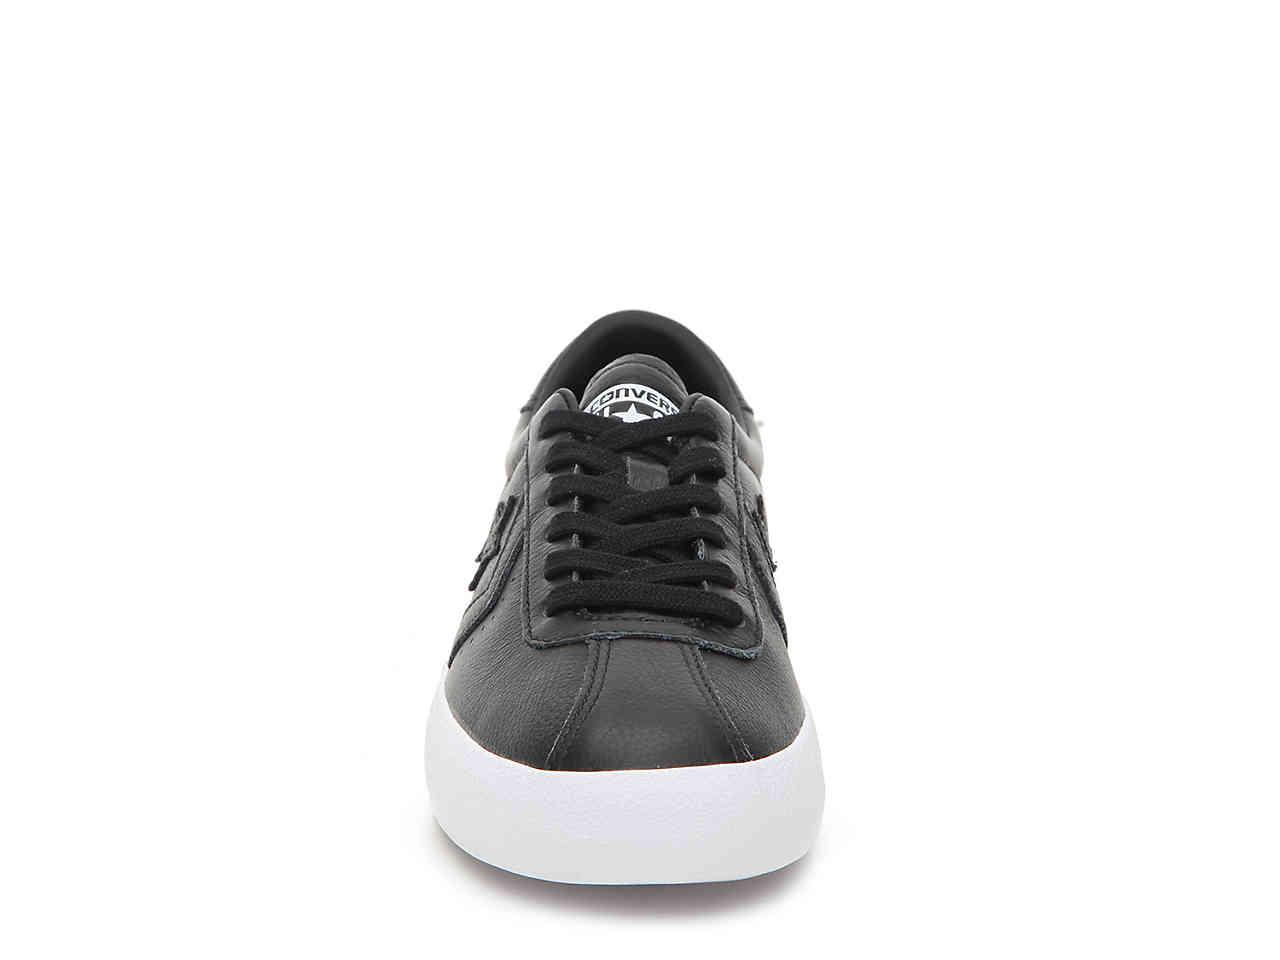 Lyst - Converse Chuck Taylor All Star Breakpoint Leather Sneaker in ... 6721b2763